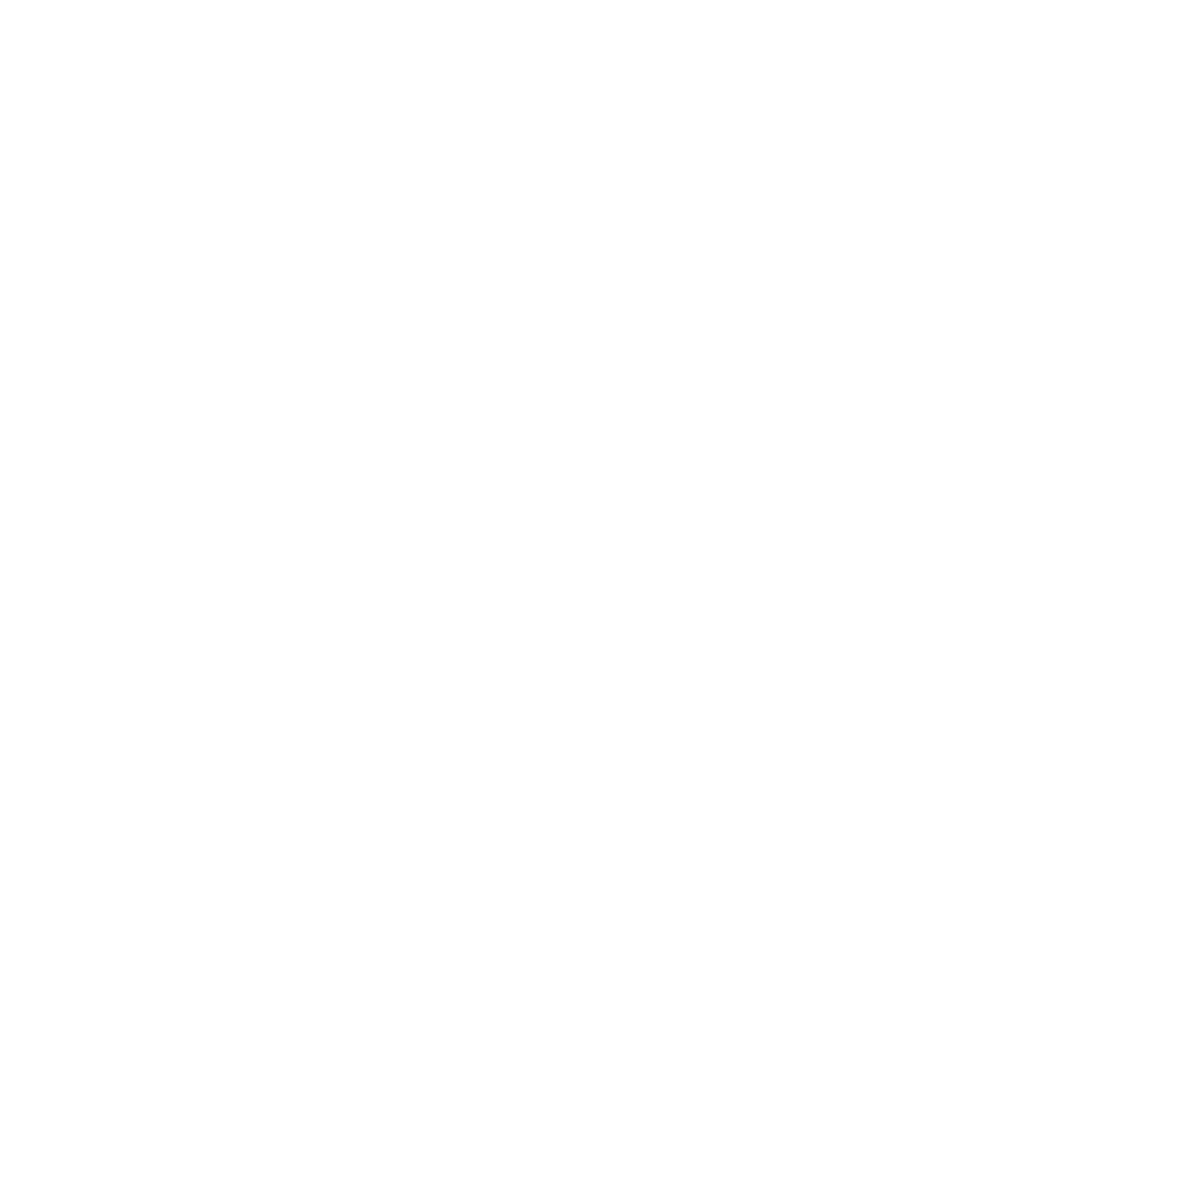 National Pet Bird Day logo (white)